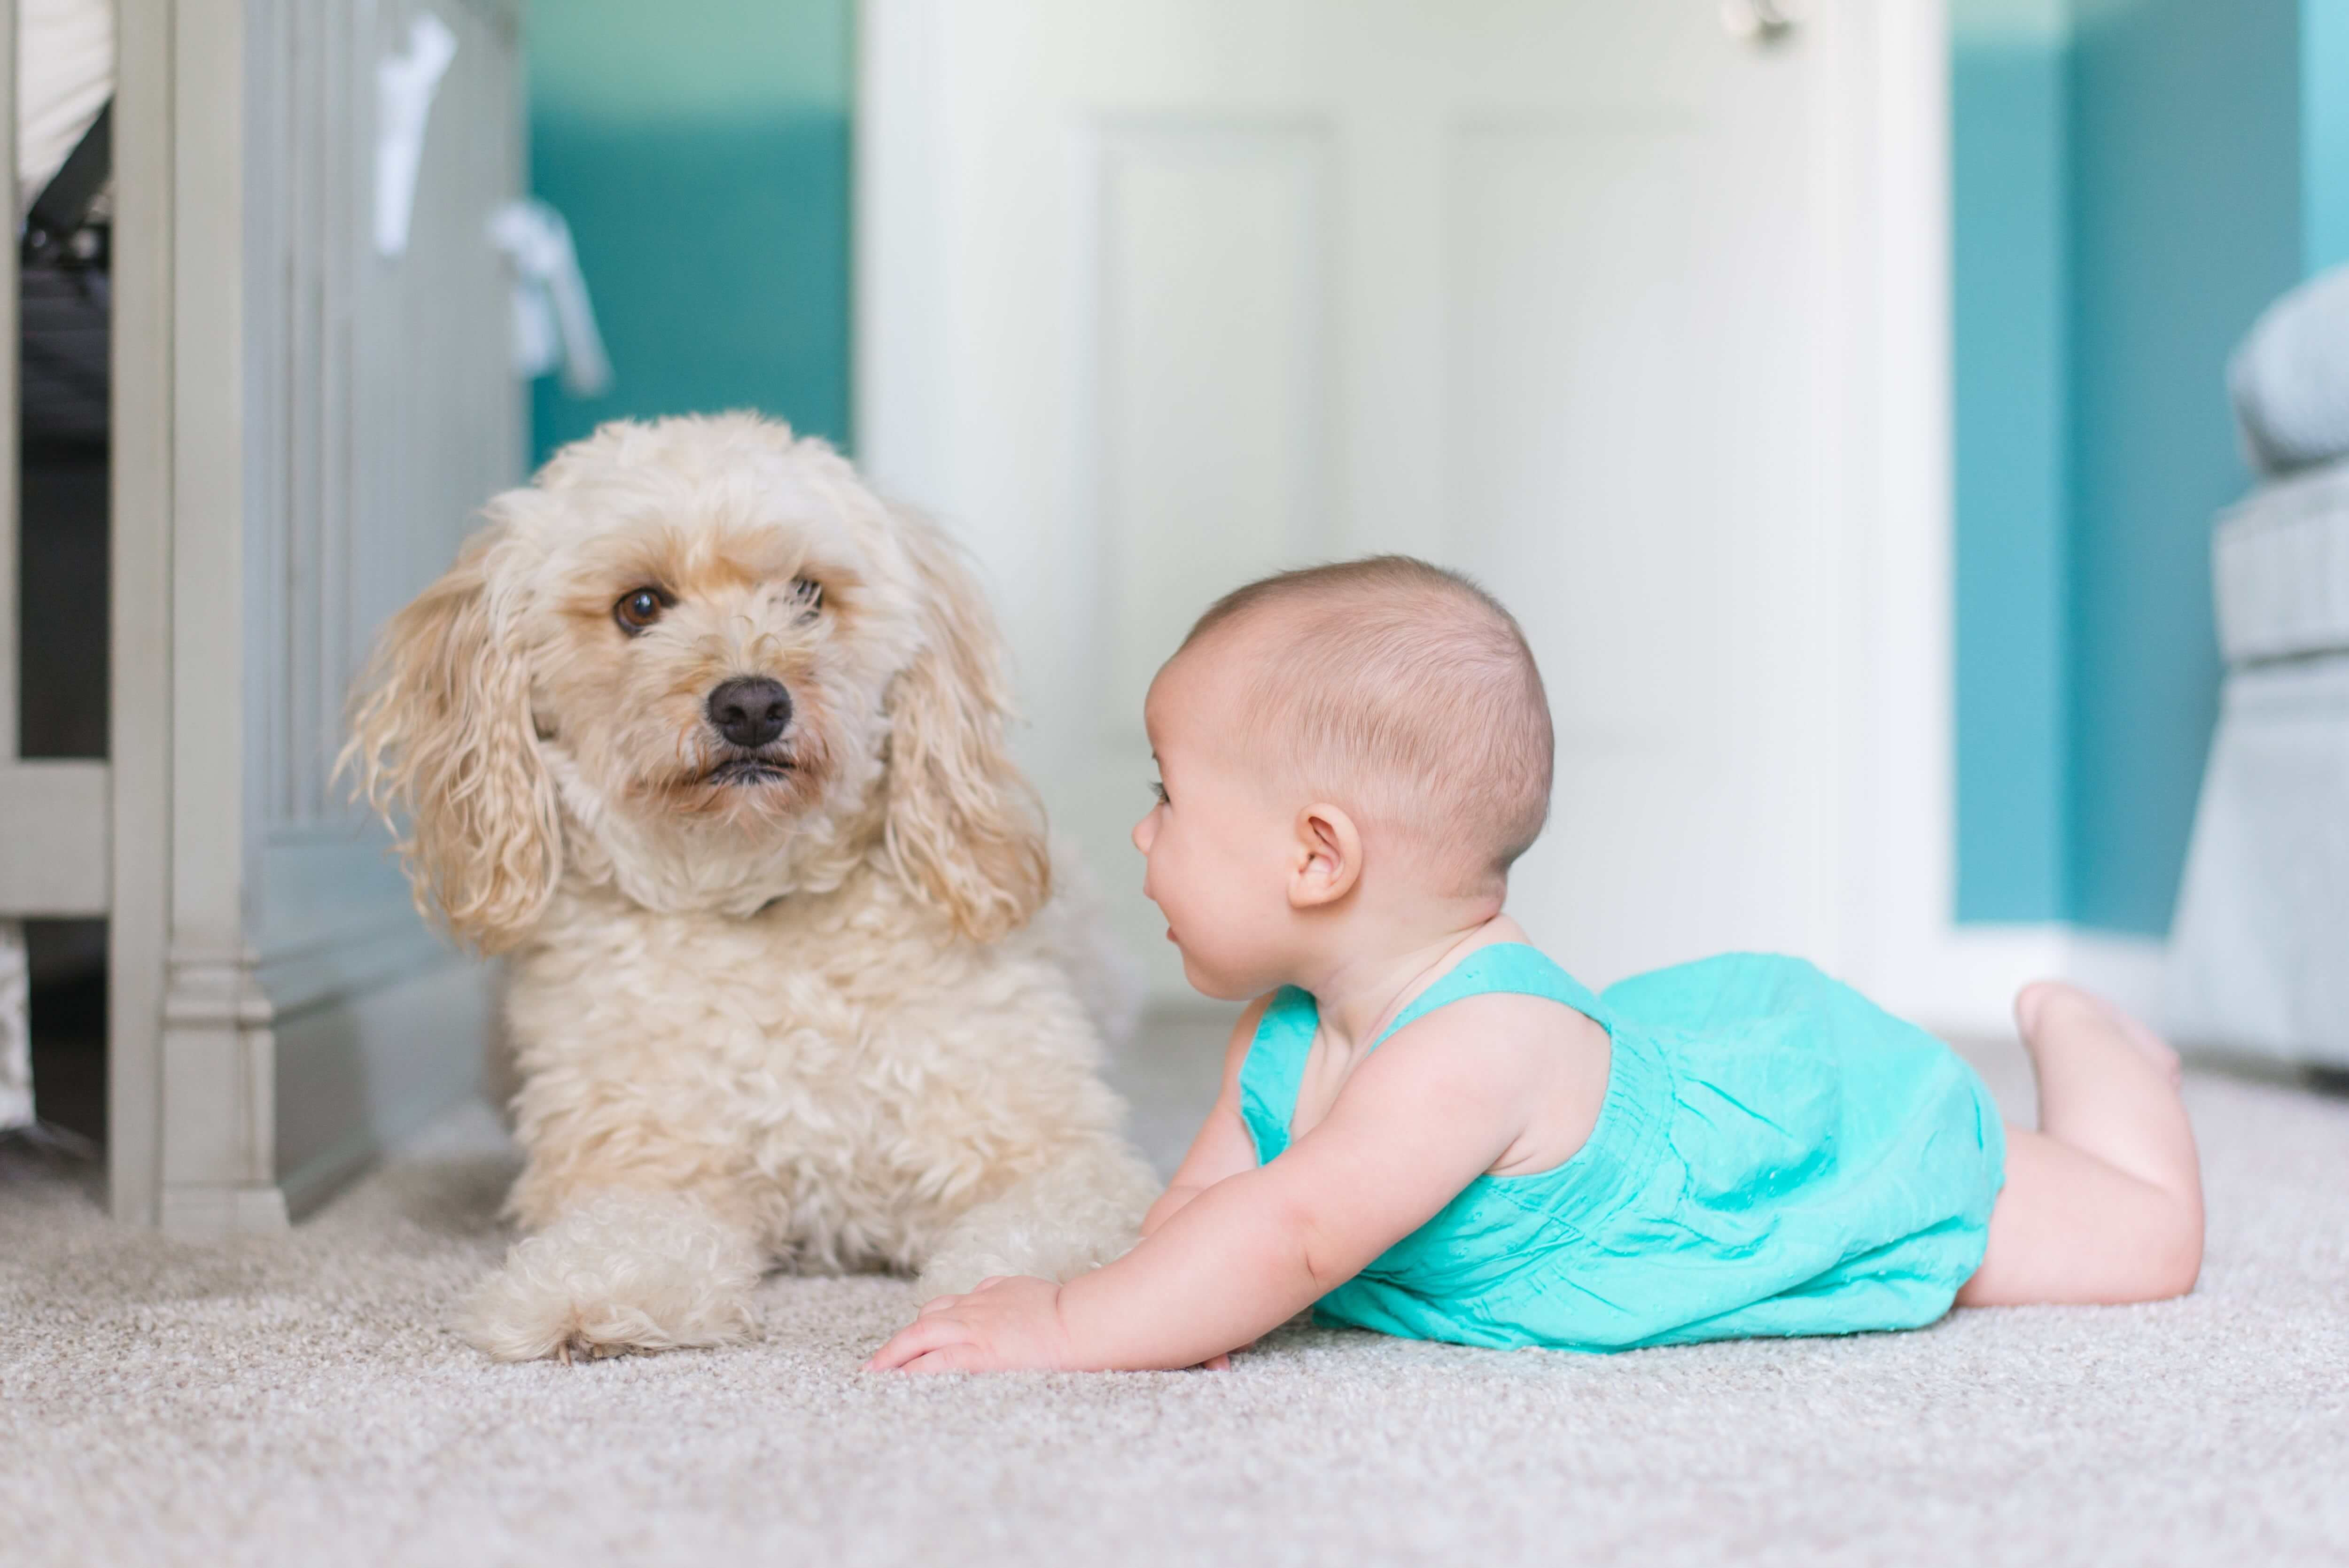 Carpet Cleaning in Puyallup removes pet allergens